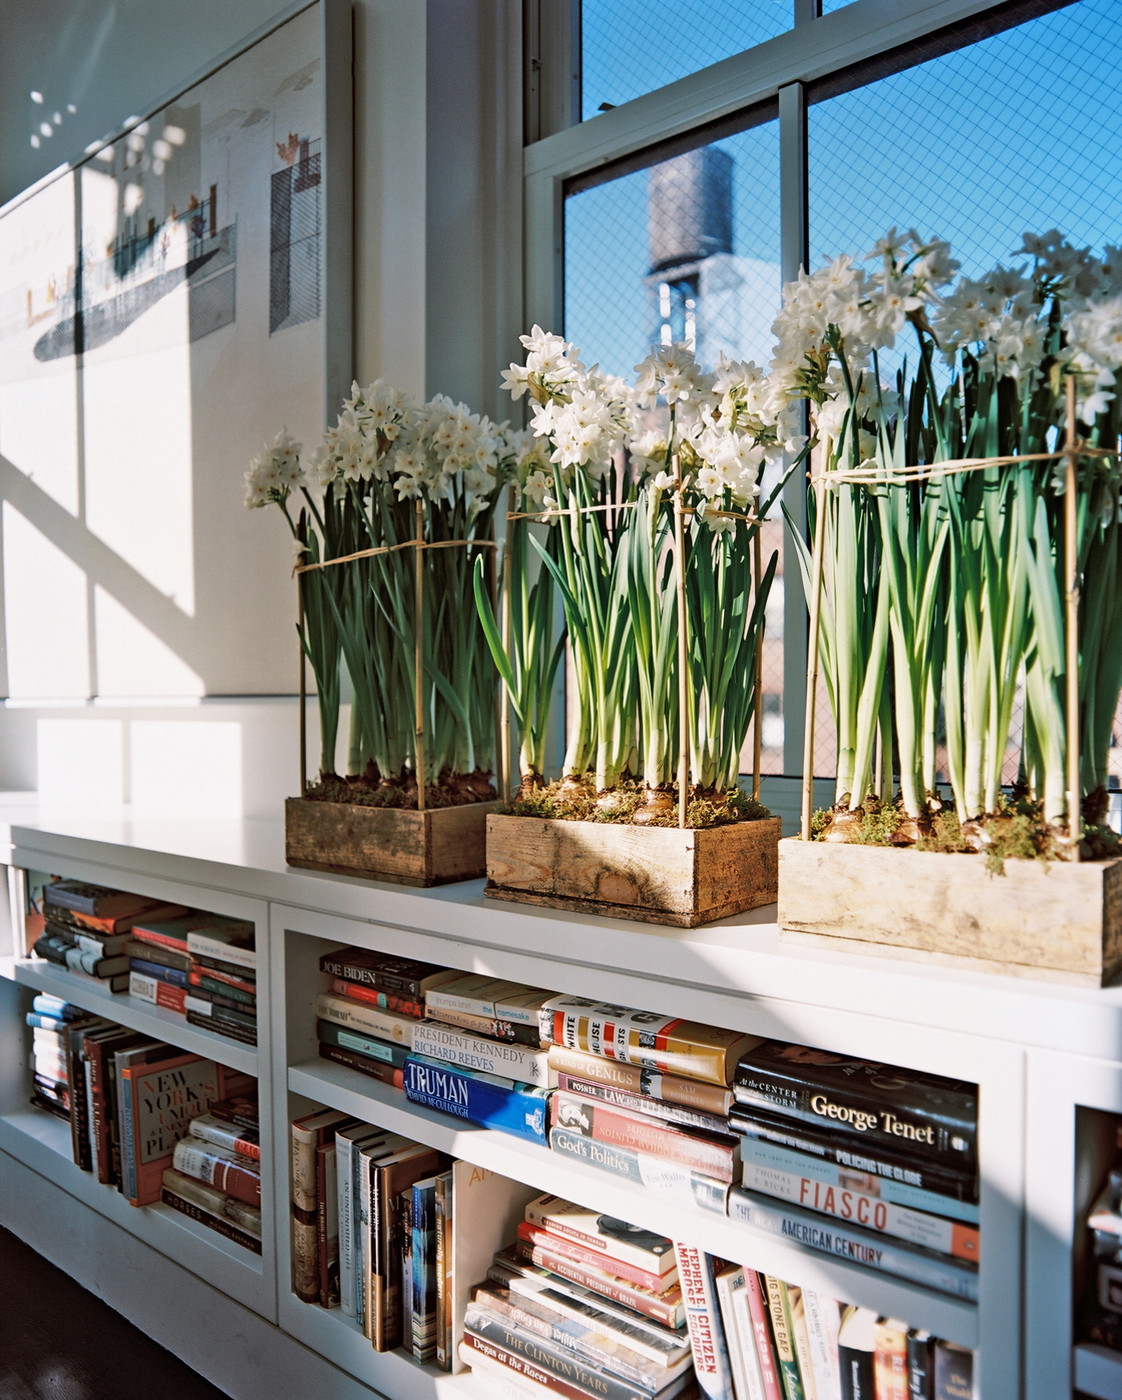 Bookcase Flowers Photos Design Ideas Remodel And Decor